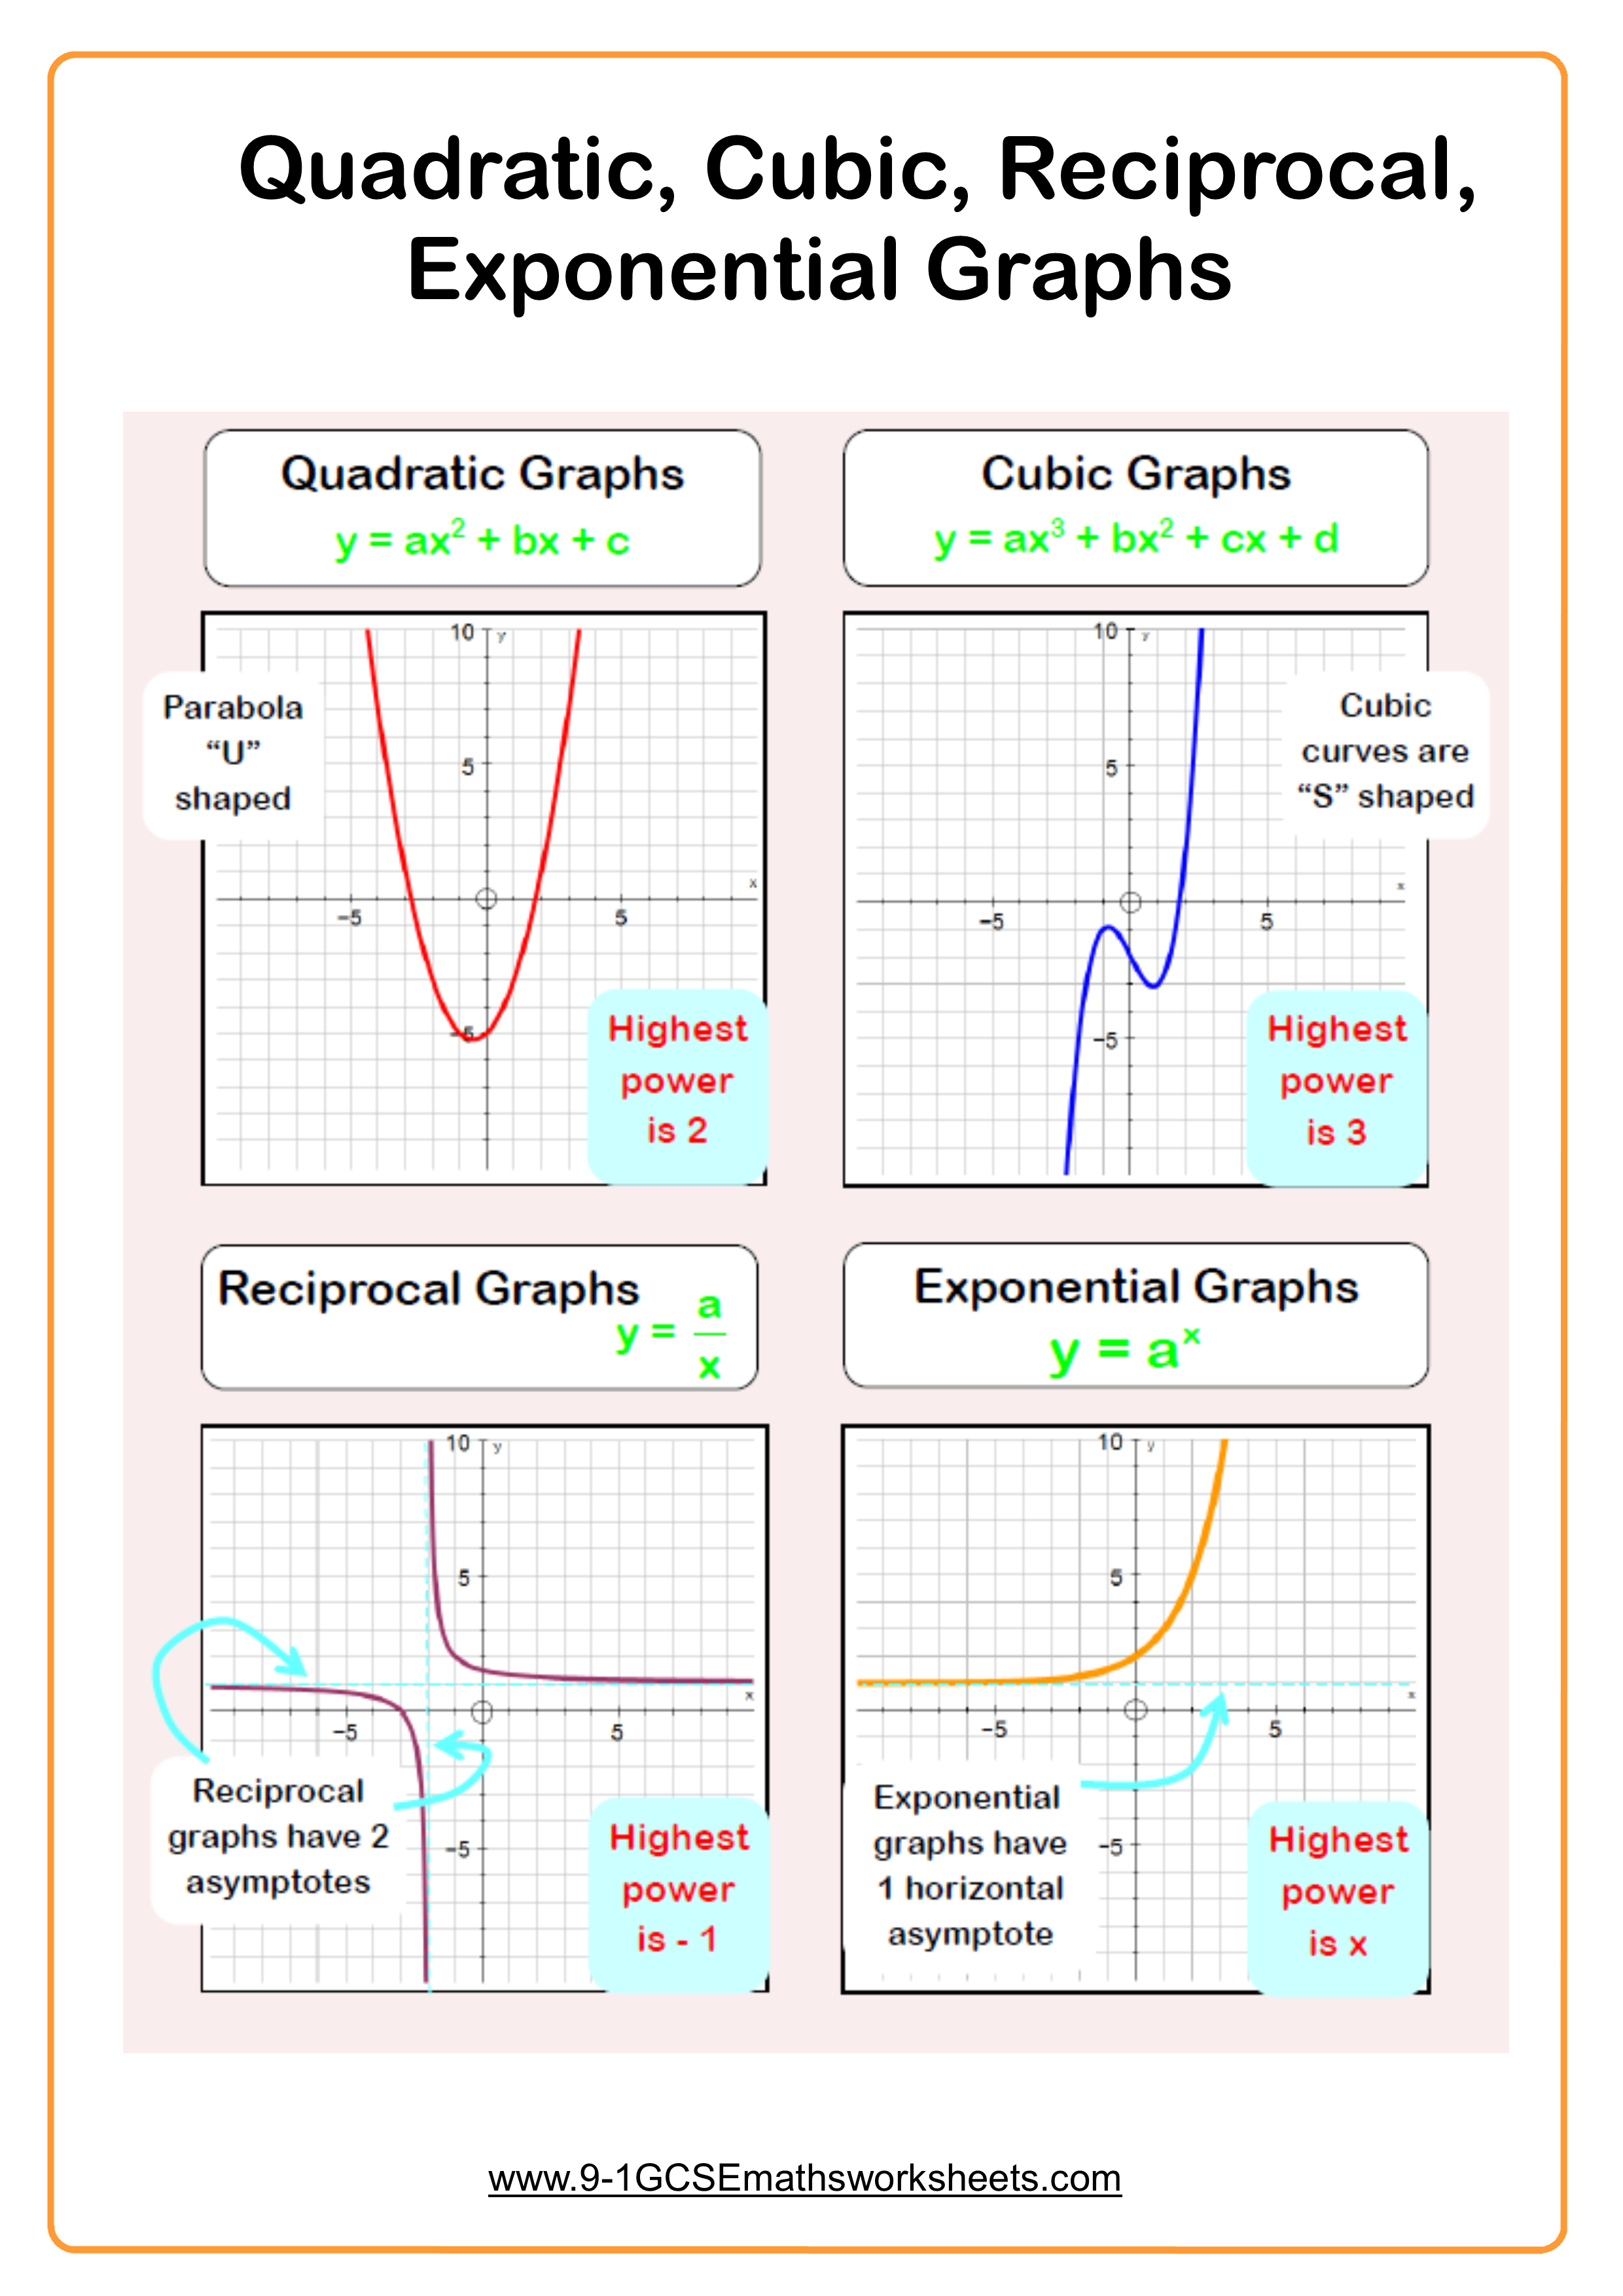 Quadratic Graphs example